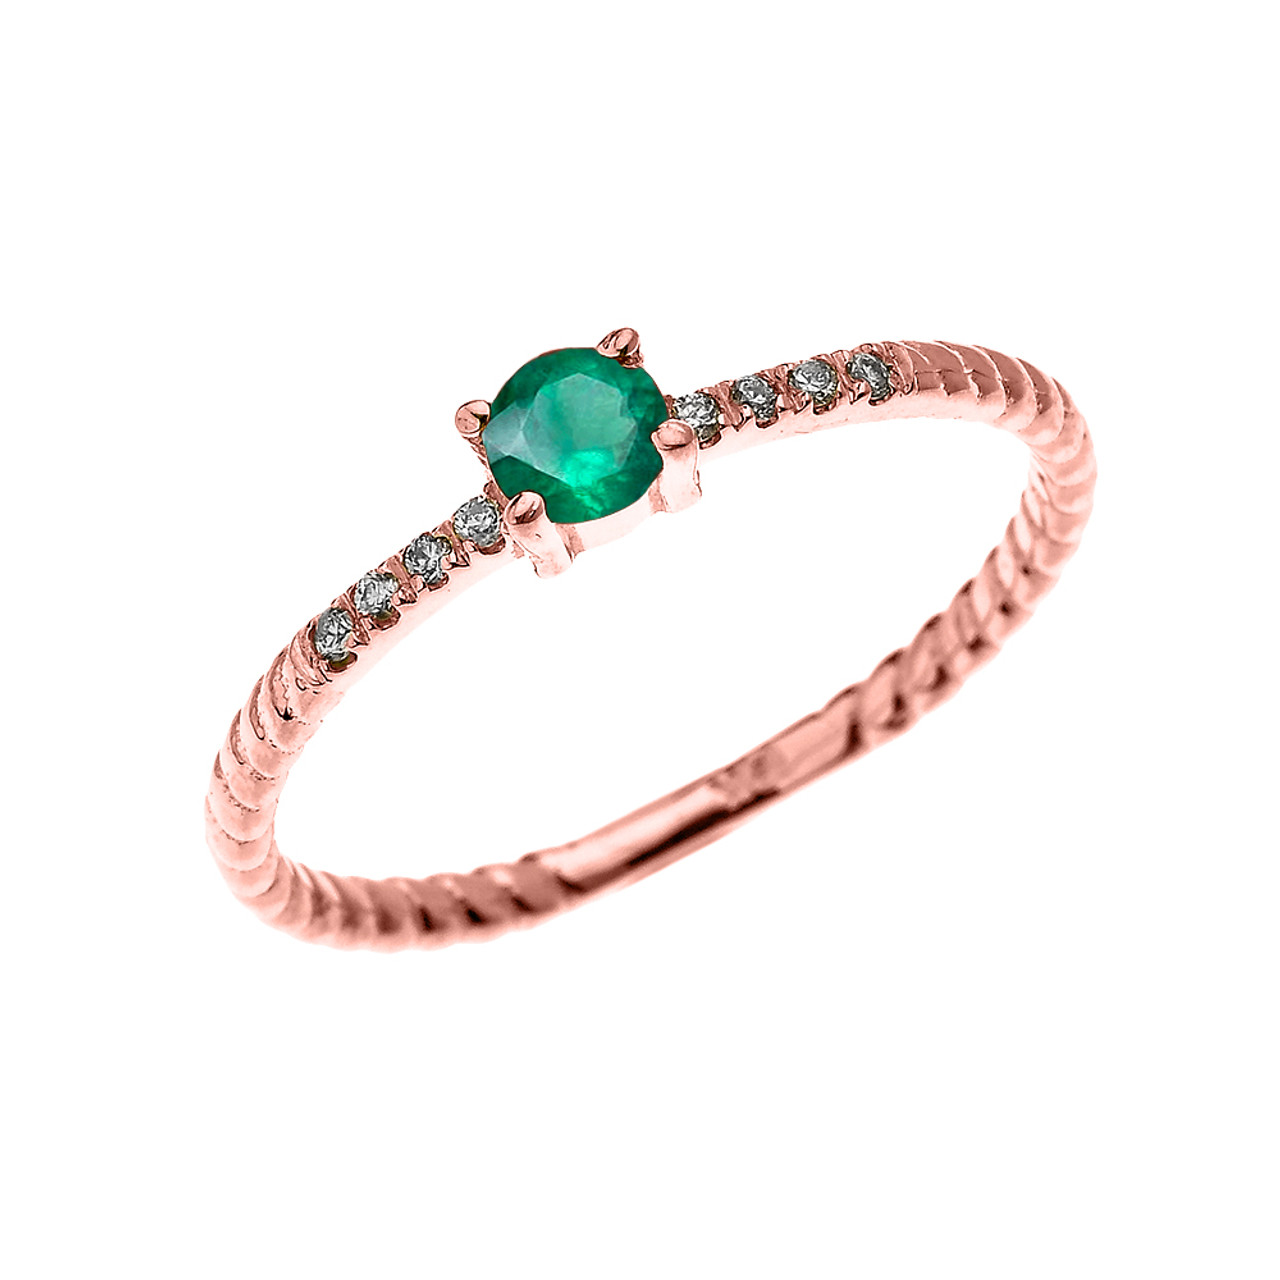 87095d8f93e57 Rose Gold Dainty Solitaire Emerald and Diamond Rope Design  Engagement/Proposal/Stackable Ring